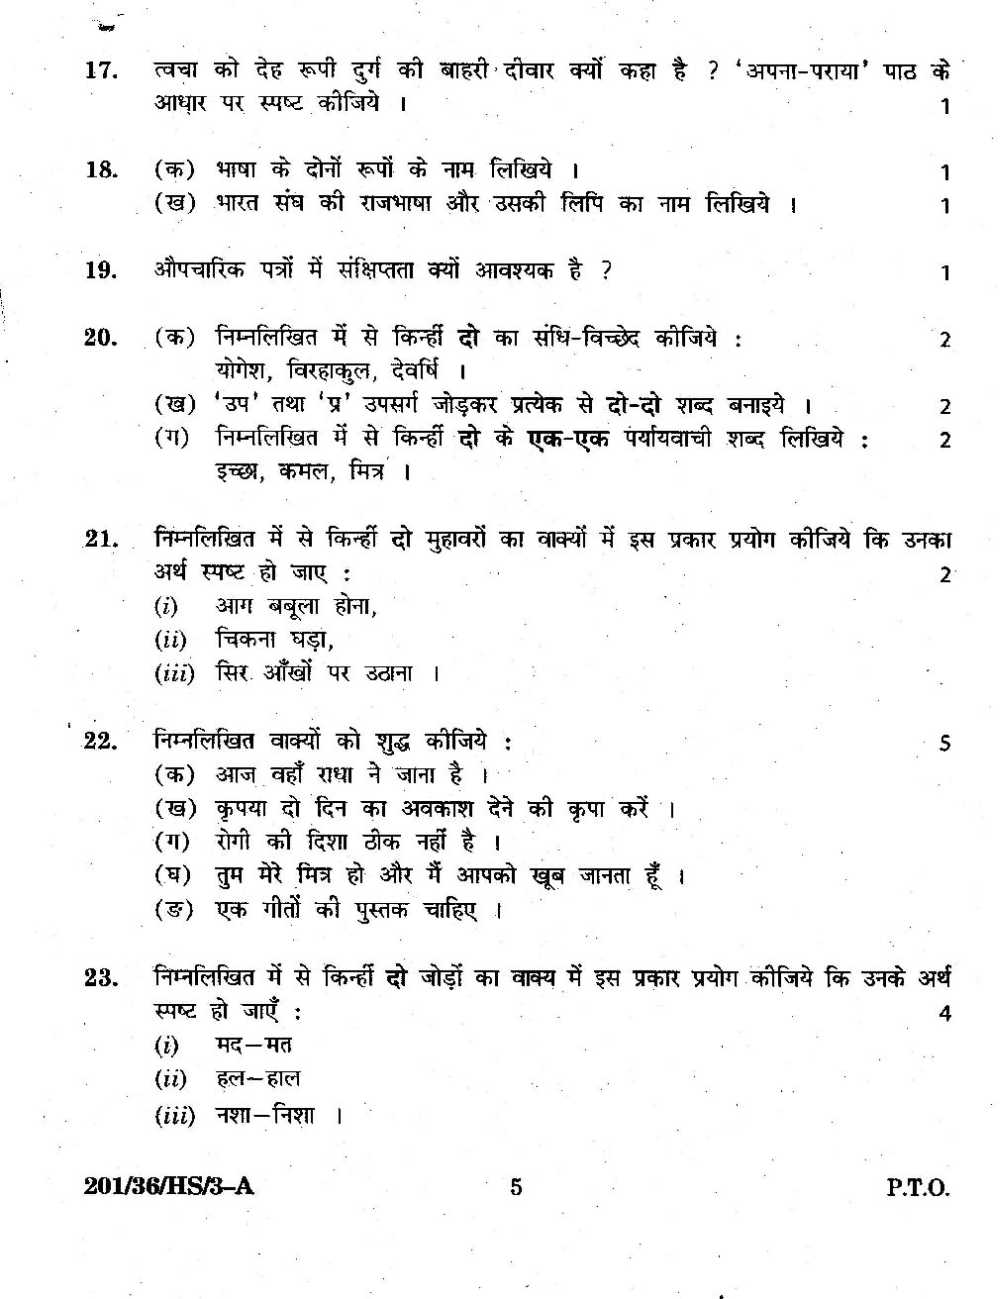 NIOS DELED Question Papers: